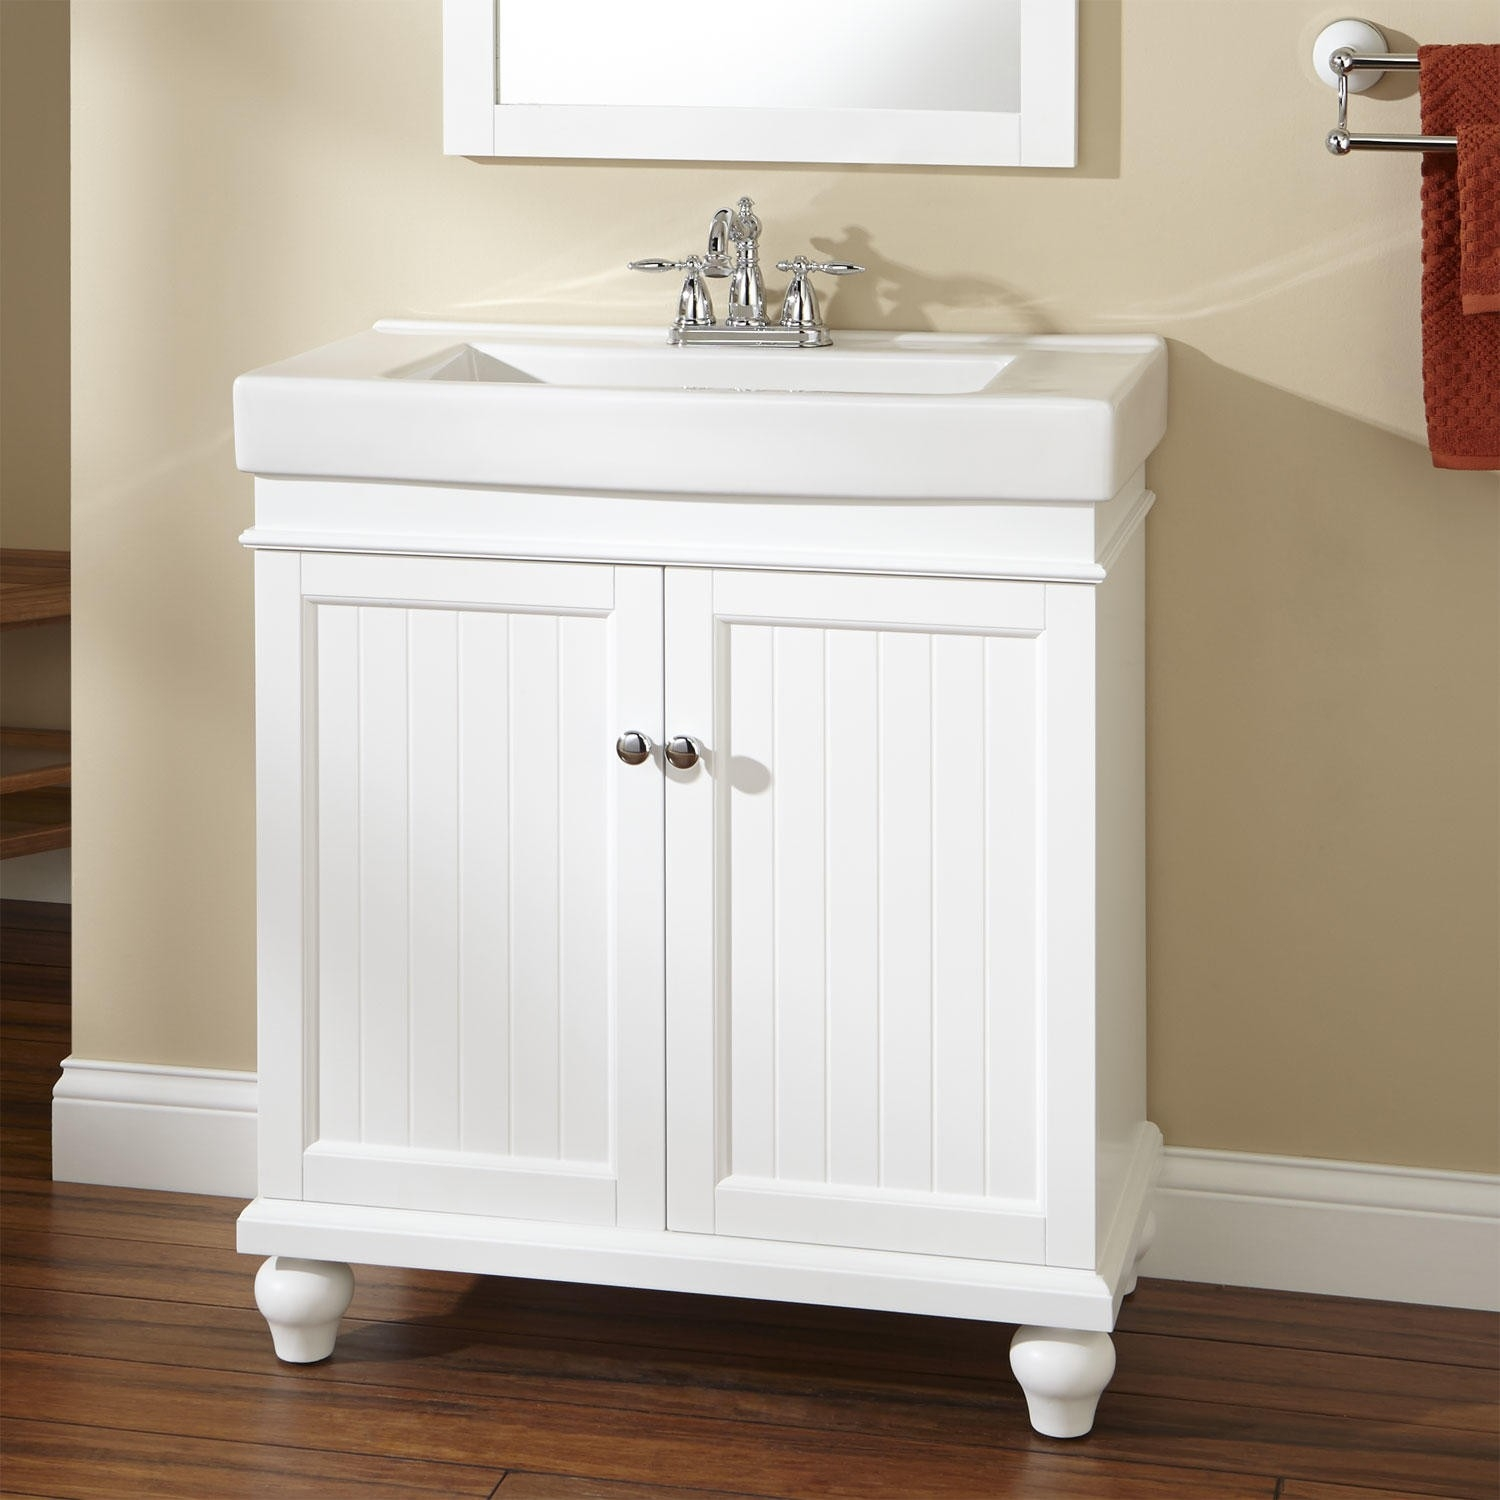 30 X 18 Inch Bathroom Vanity